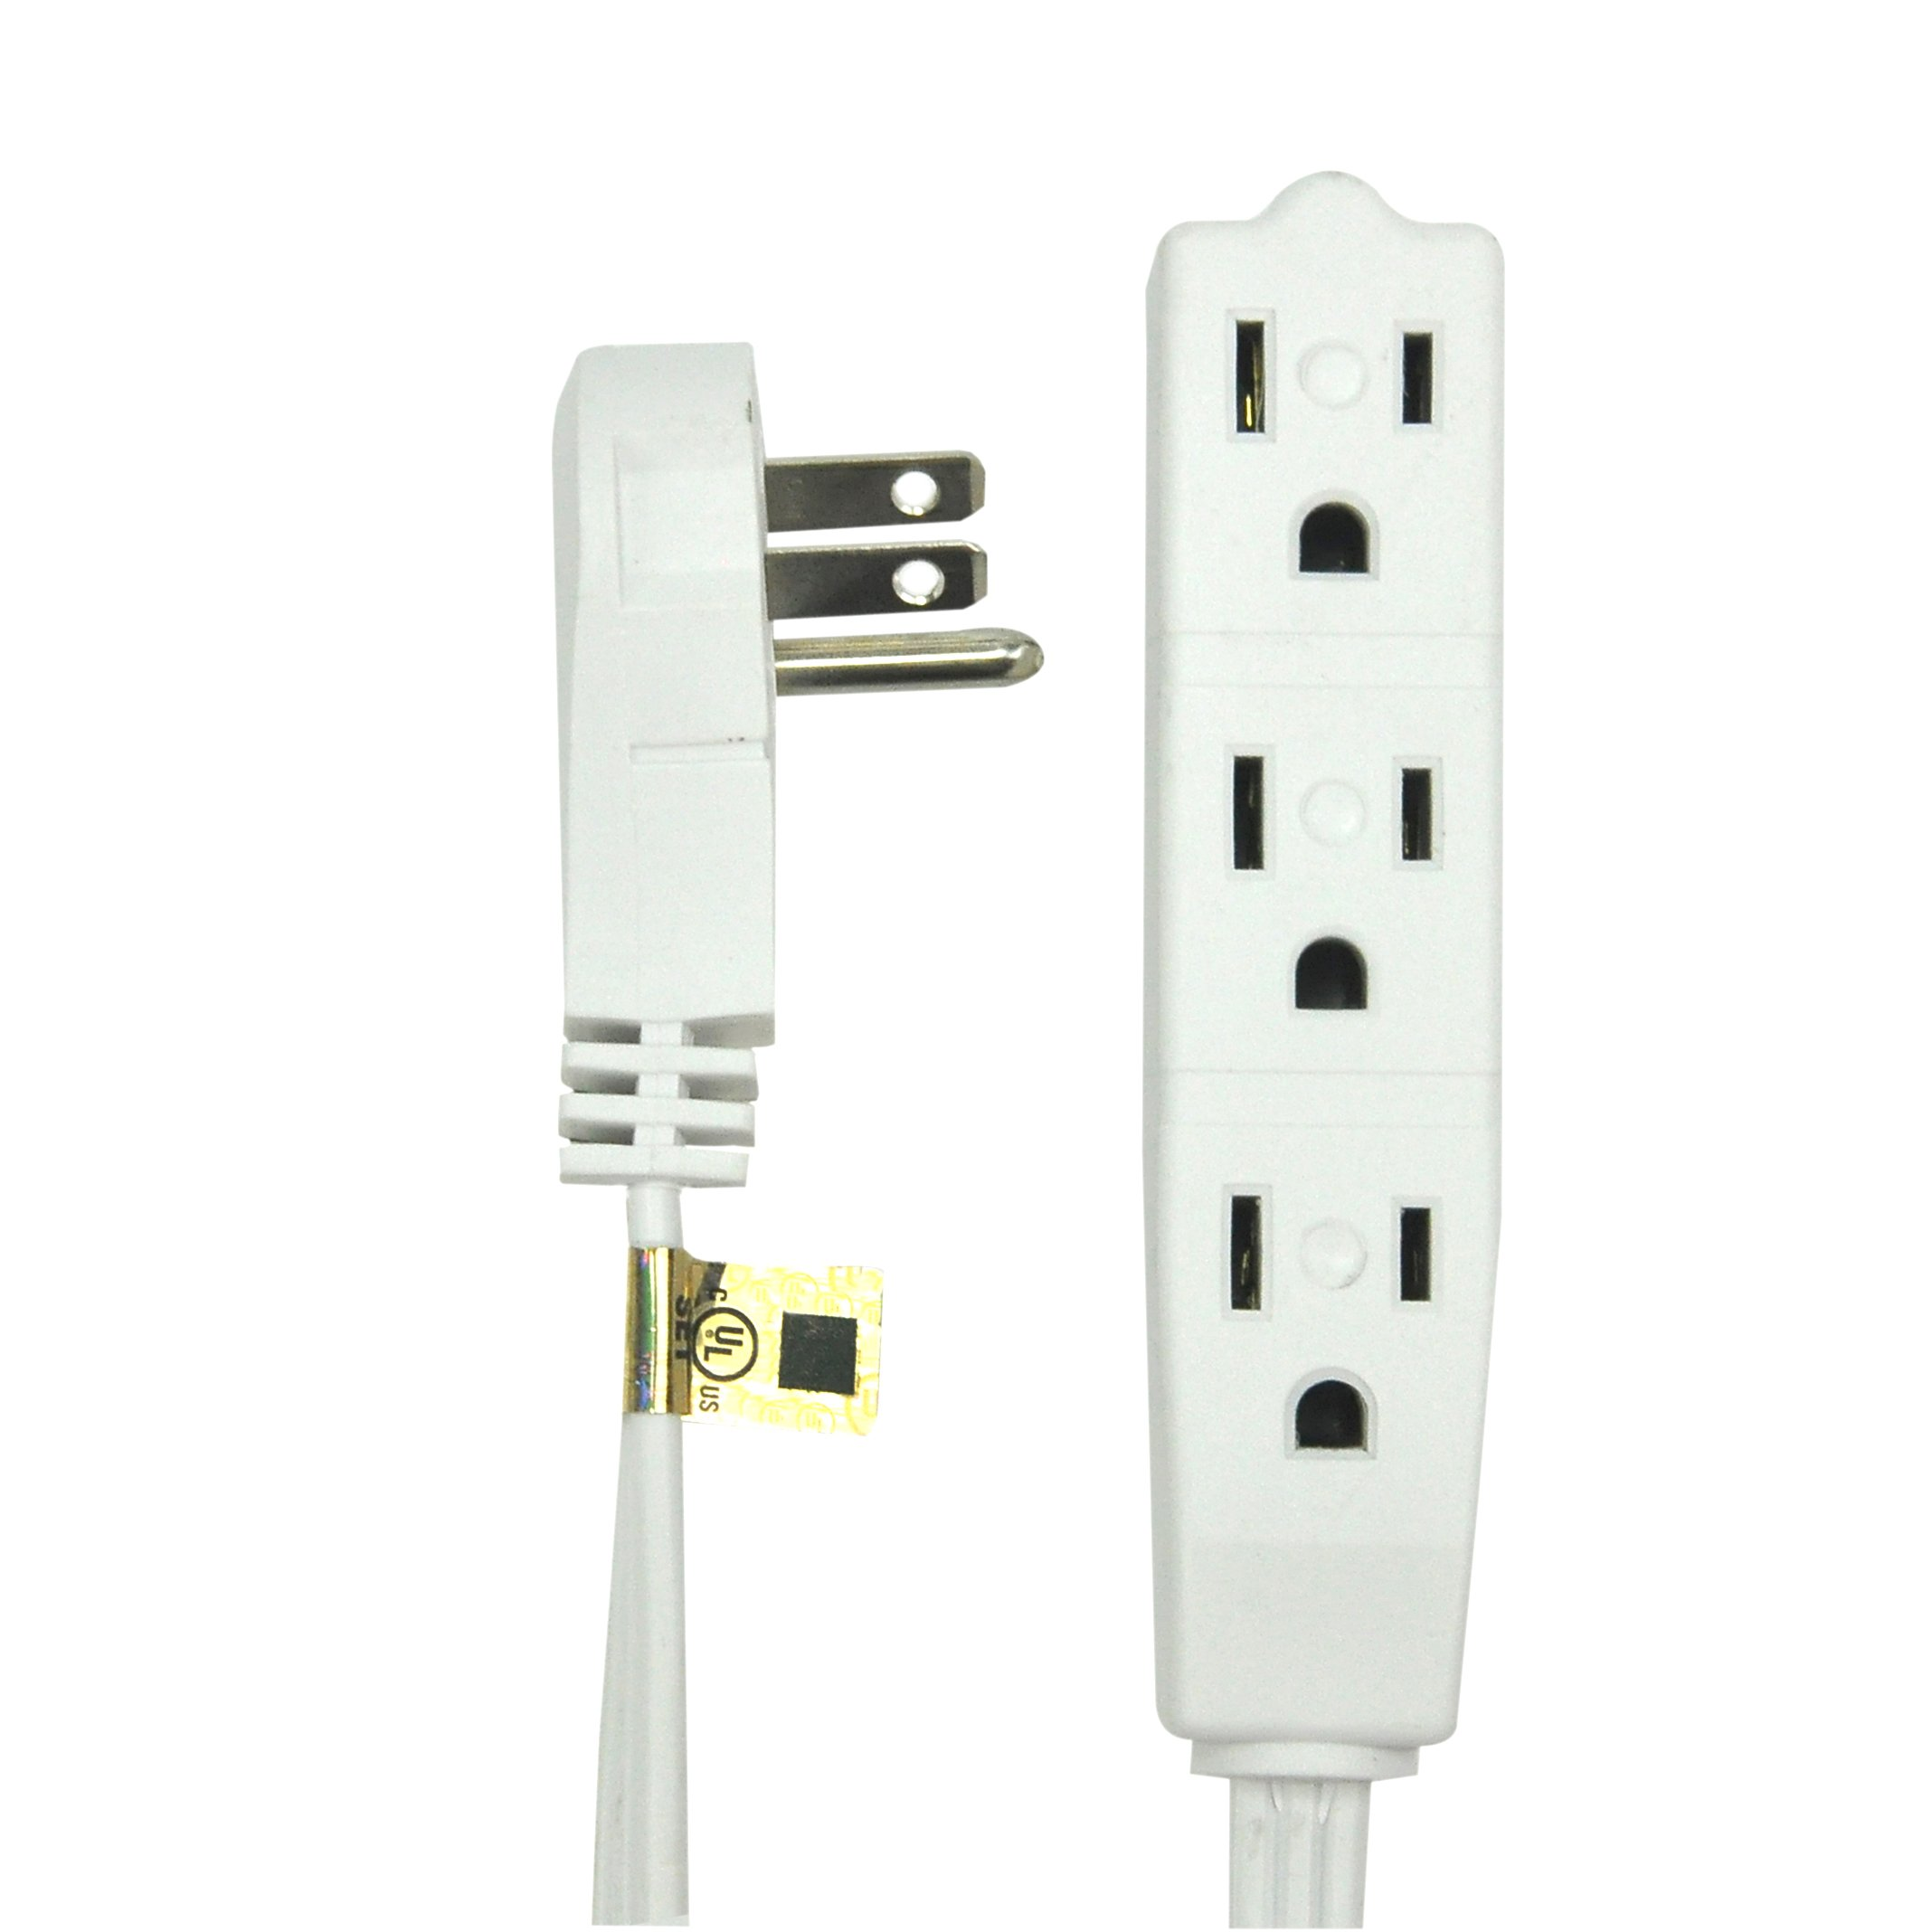 3 outlet capacity 3 prong grounded protection angled 10